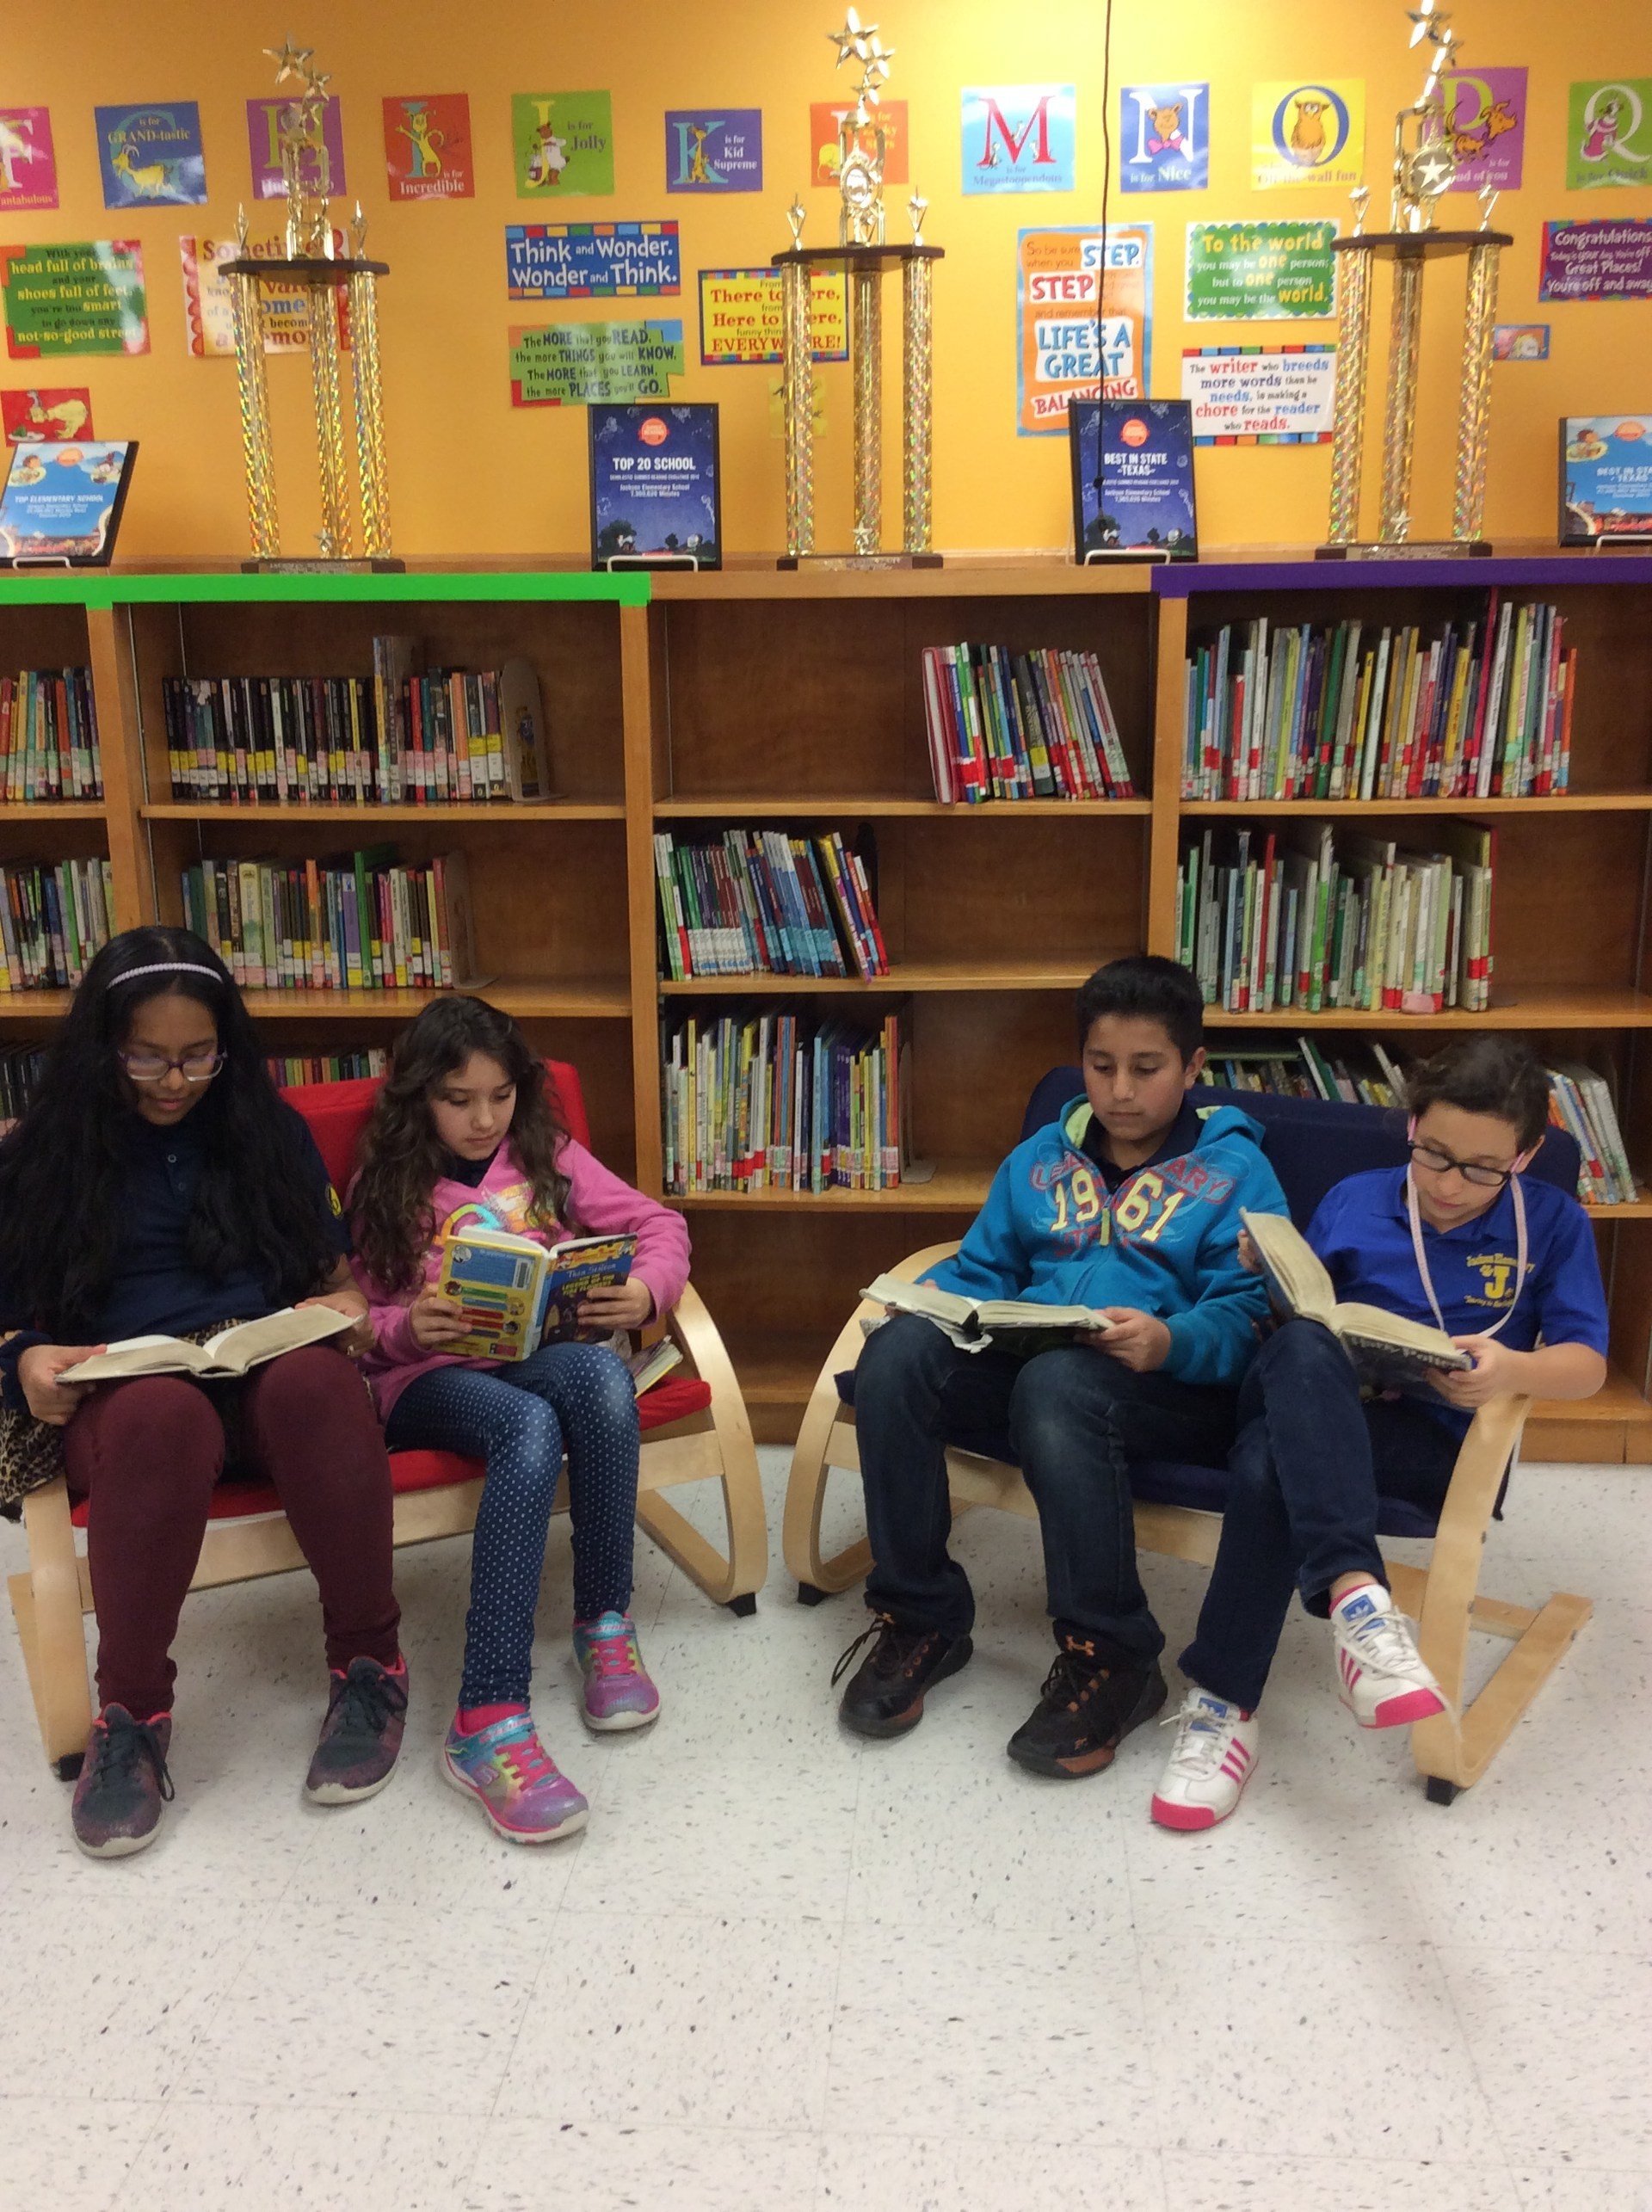 students reading on the library couches